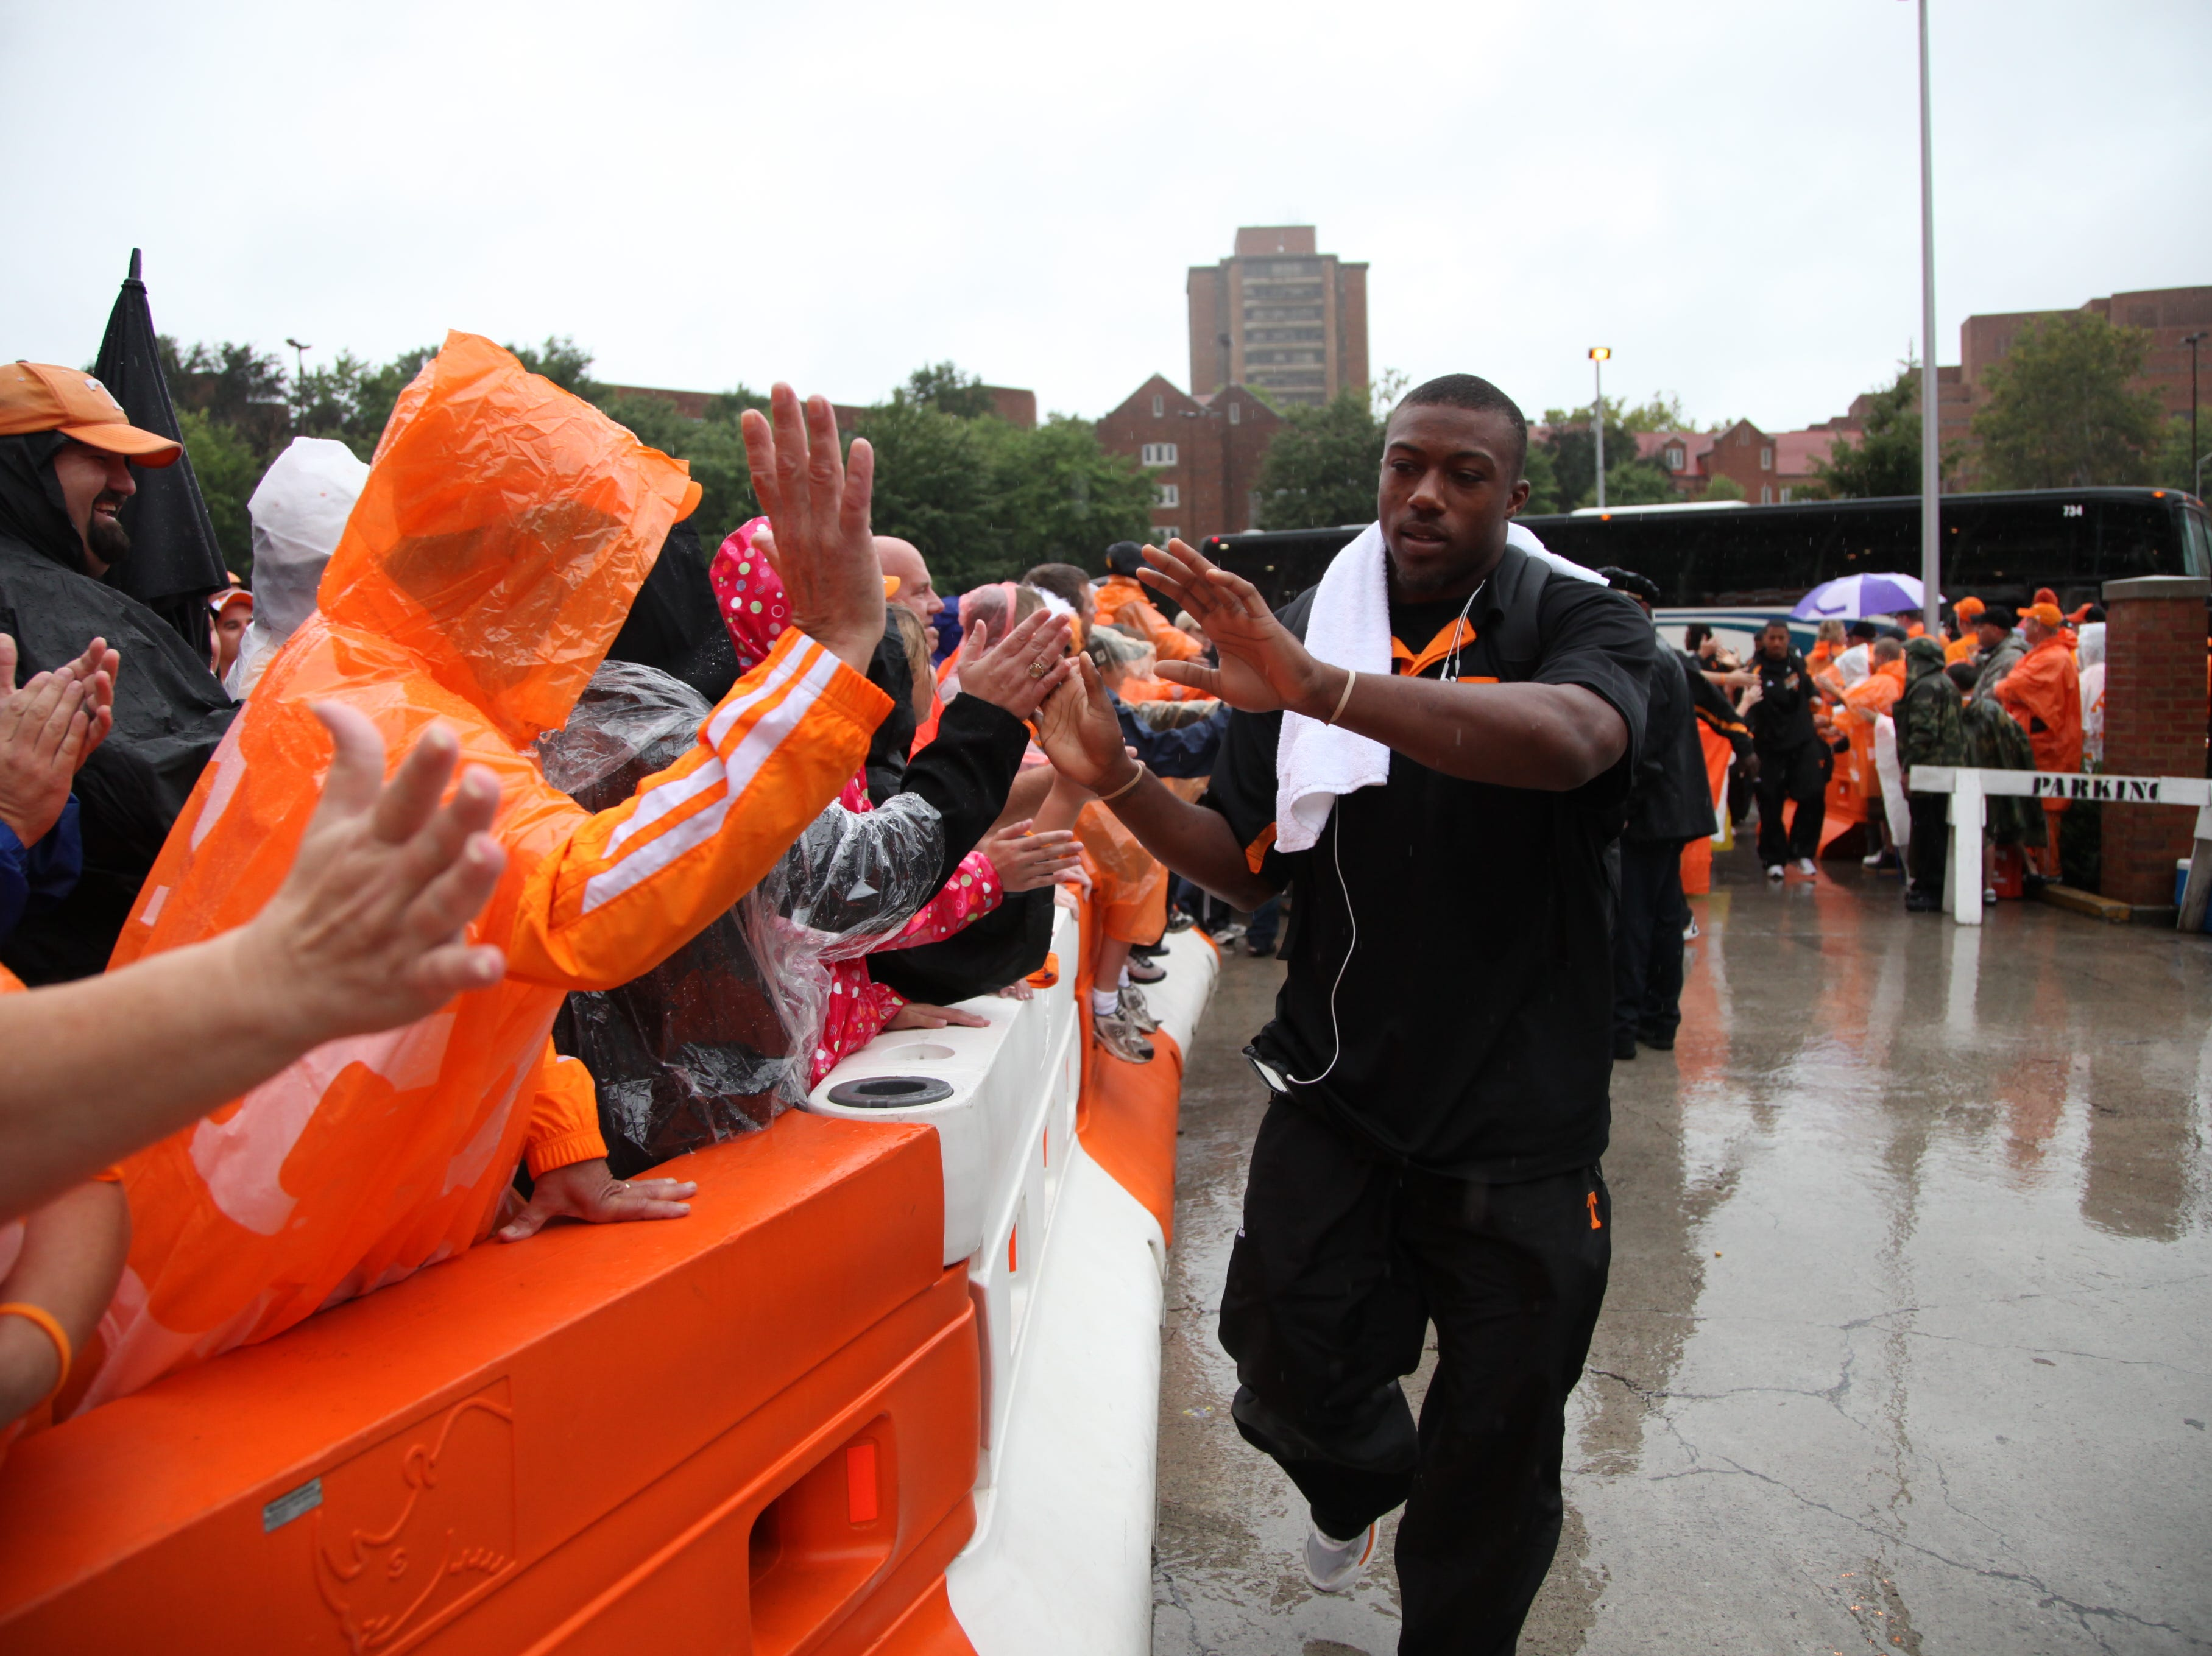 Tennessee safety Eric Berry greets fans after arriving by bus for the Ohio University game at Neyland Stadium on Saturday, Sept. 26, 2009. The Vol Walk was rained out.